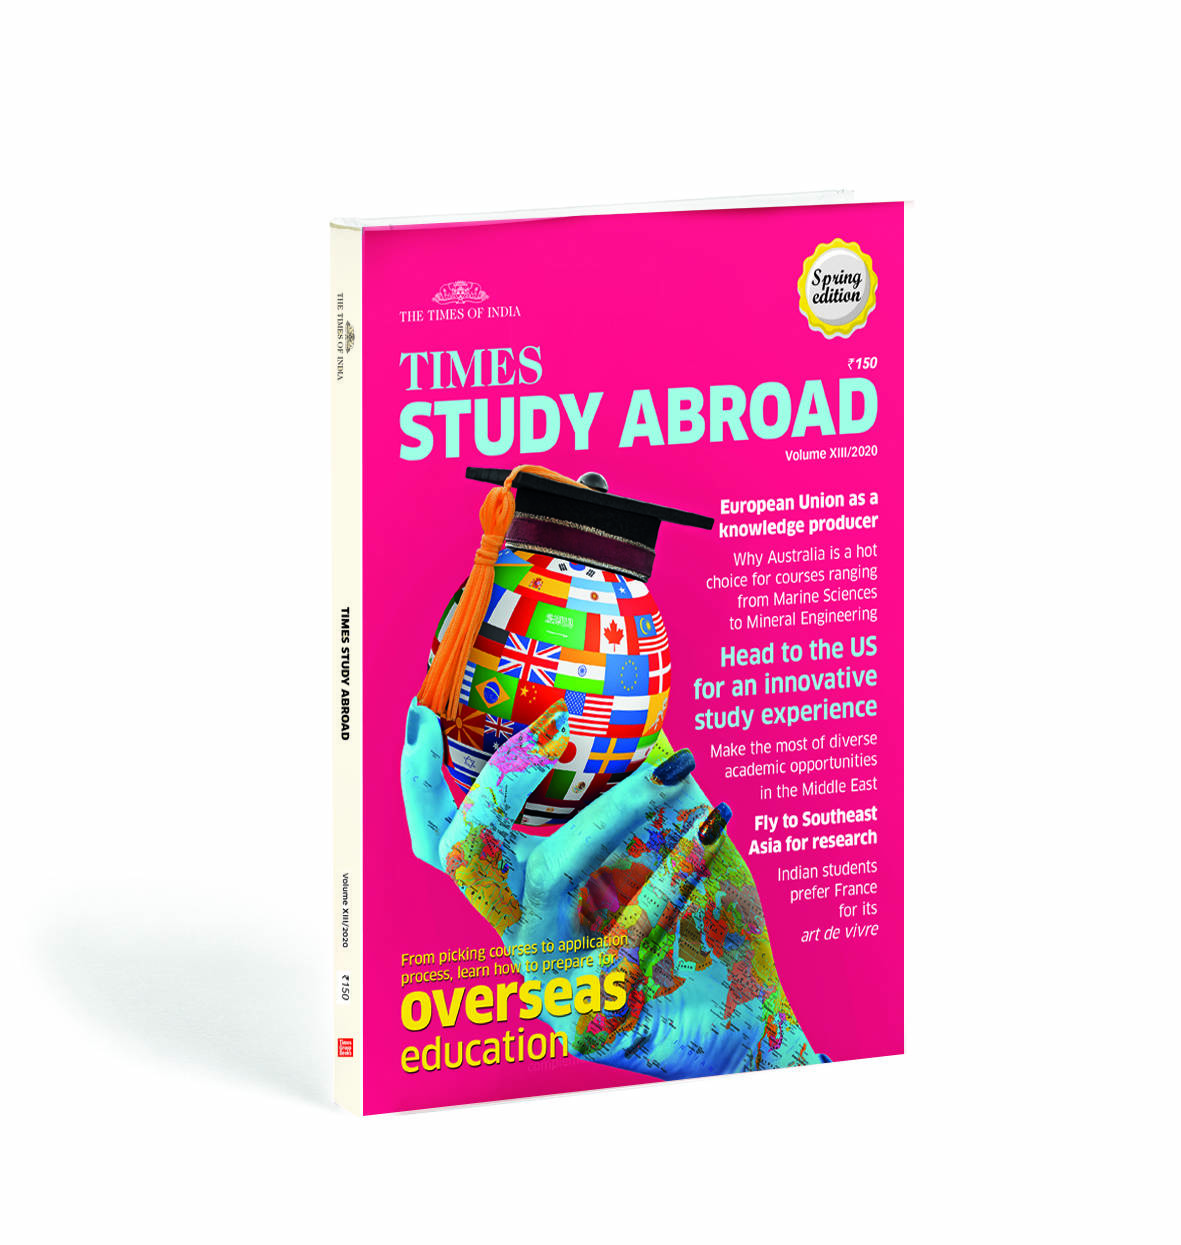 Times Study Abroad 2000 spring edition available on the stand and online platforms